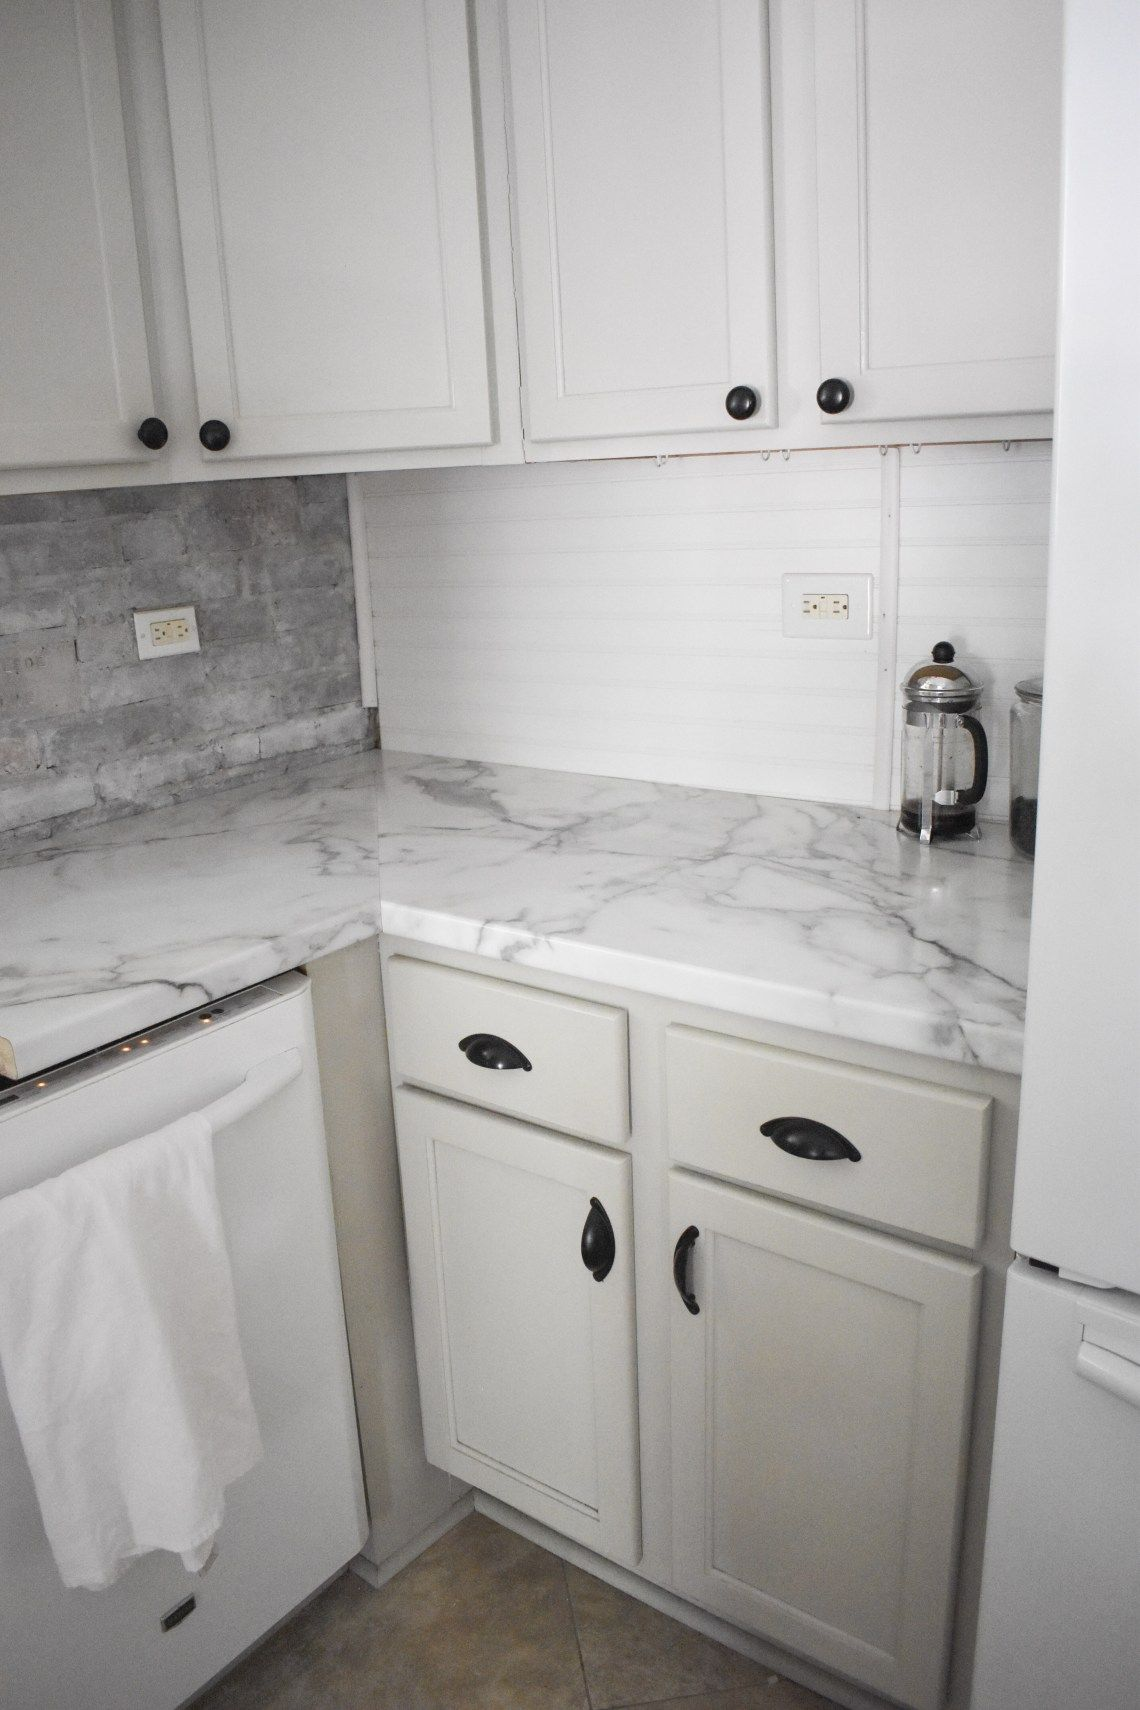 Lowe S Formica Calcutta Marble 90 Angled Edge That Wraps Back Up Underneath In 2020 Kitchen Countertops Laminate Laminate Countertops Laminate Kitchen